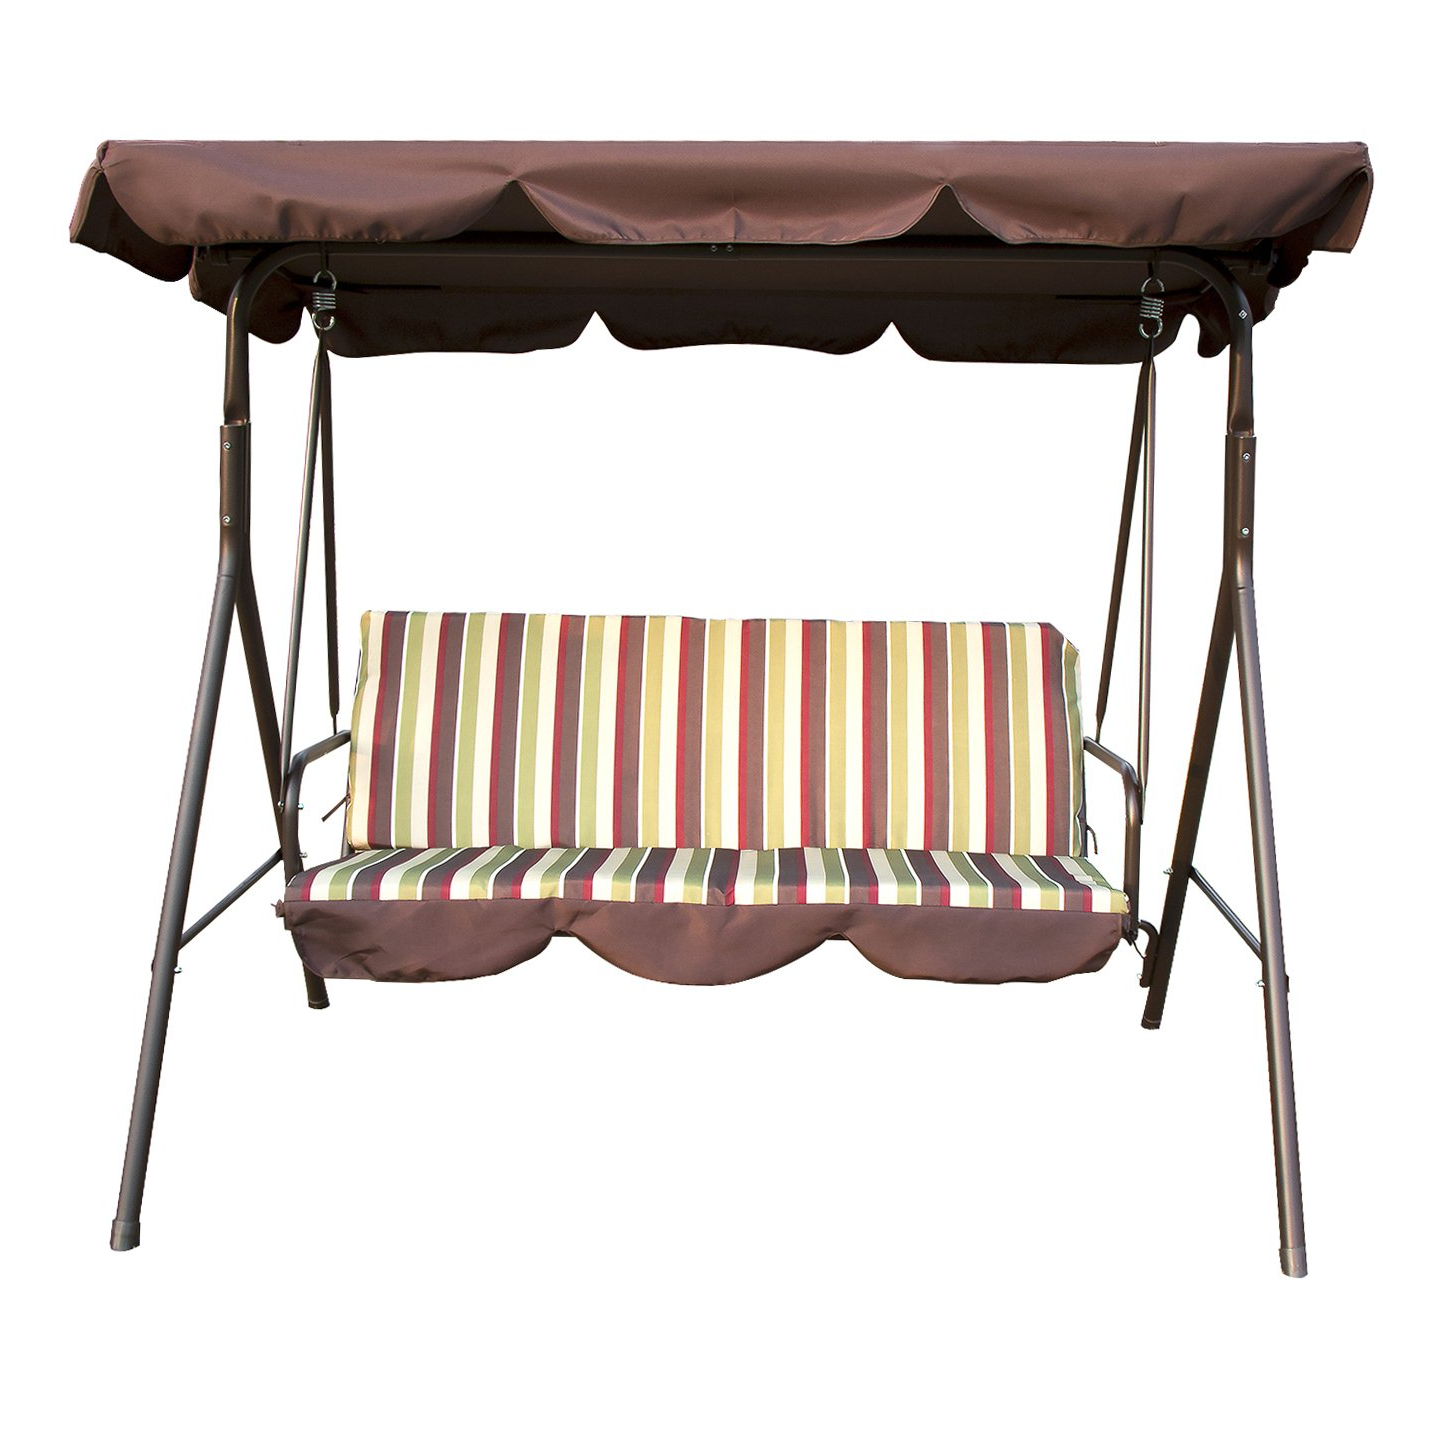 Well Known Outdoor Canopy Hammock Porch Swings With Stand In Top 10 Best Porch Swings With Stands In 2019 – Brain And Mouth (Gallery 9 of 30)